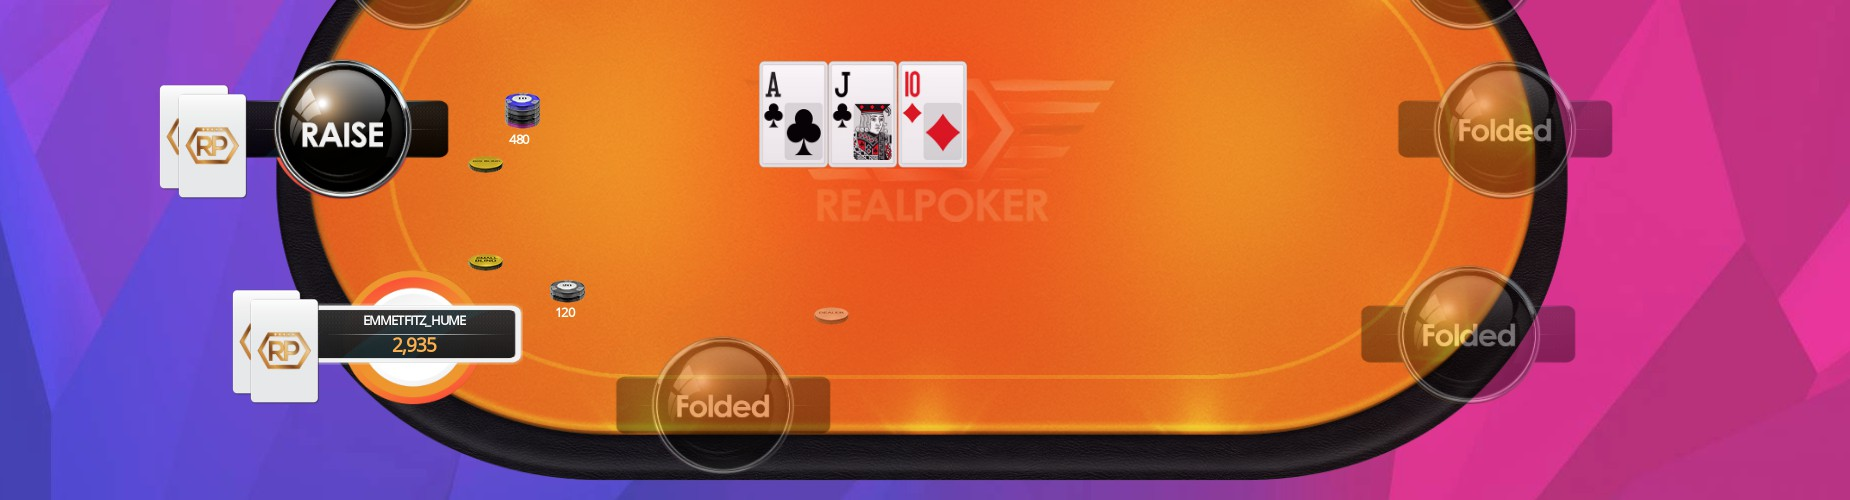 Texas Holdem Online Bitcoin Poker Explained